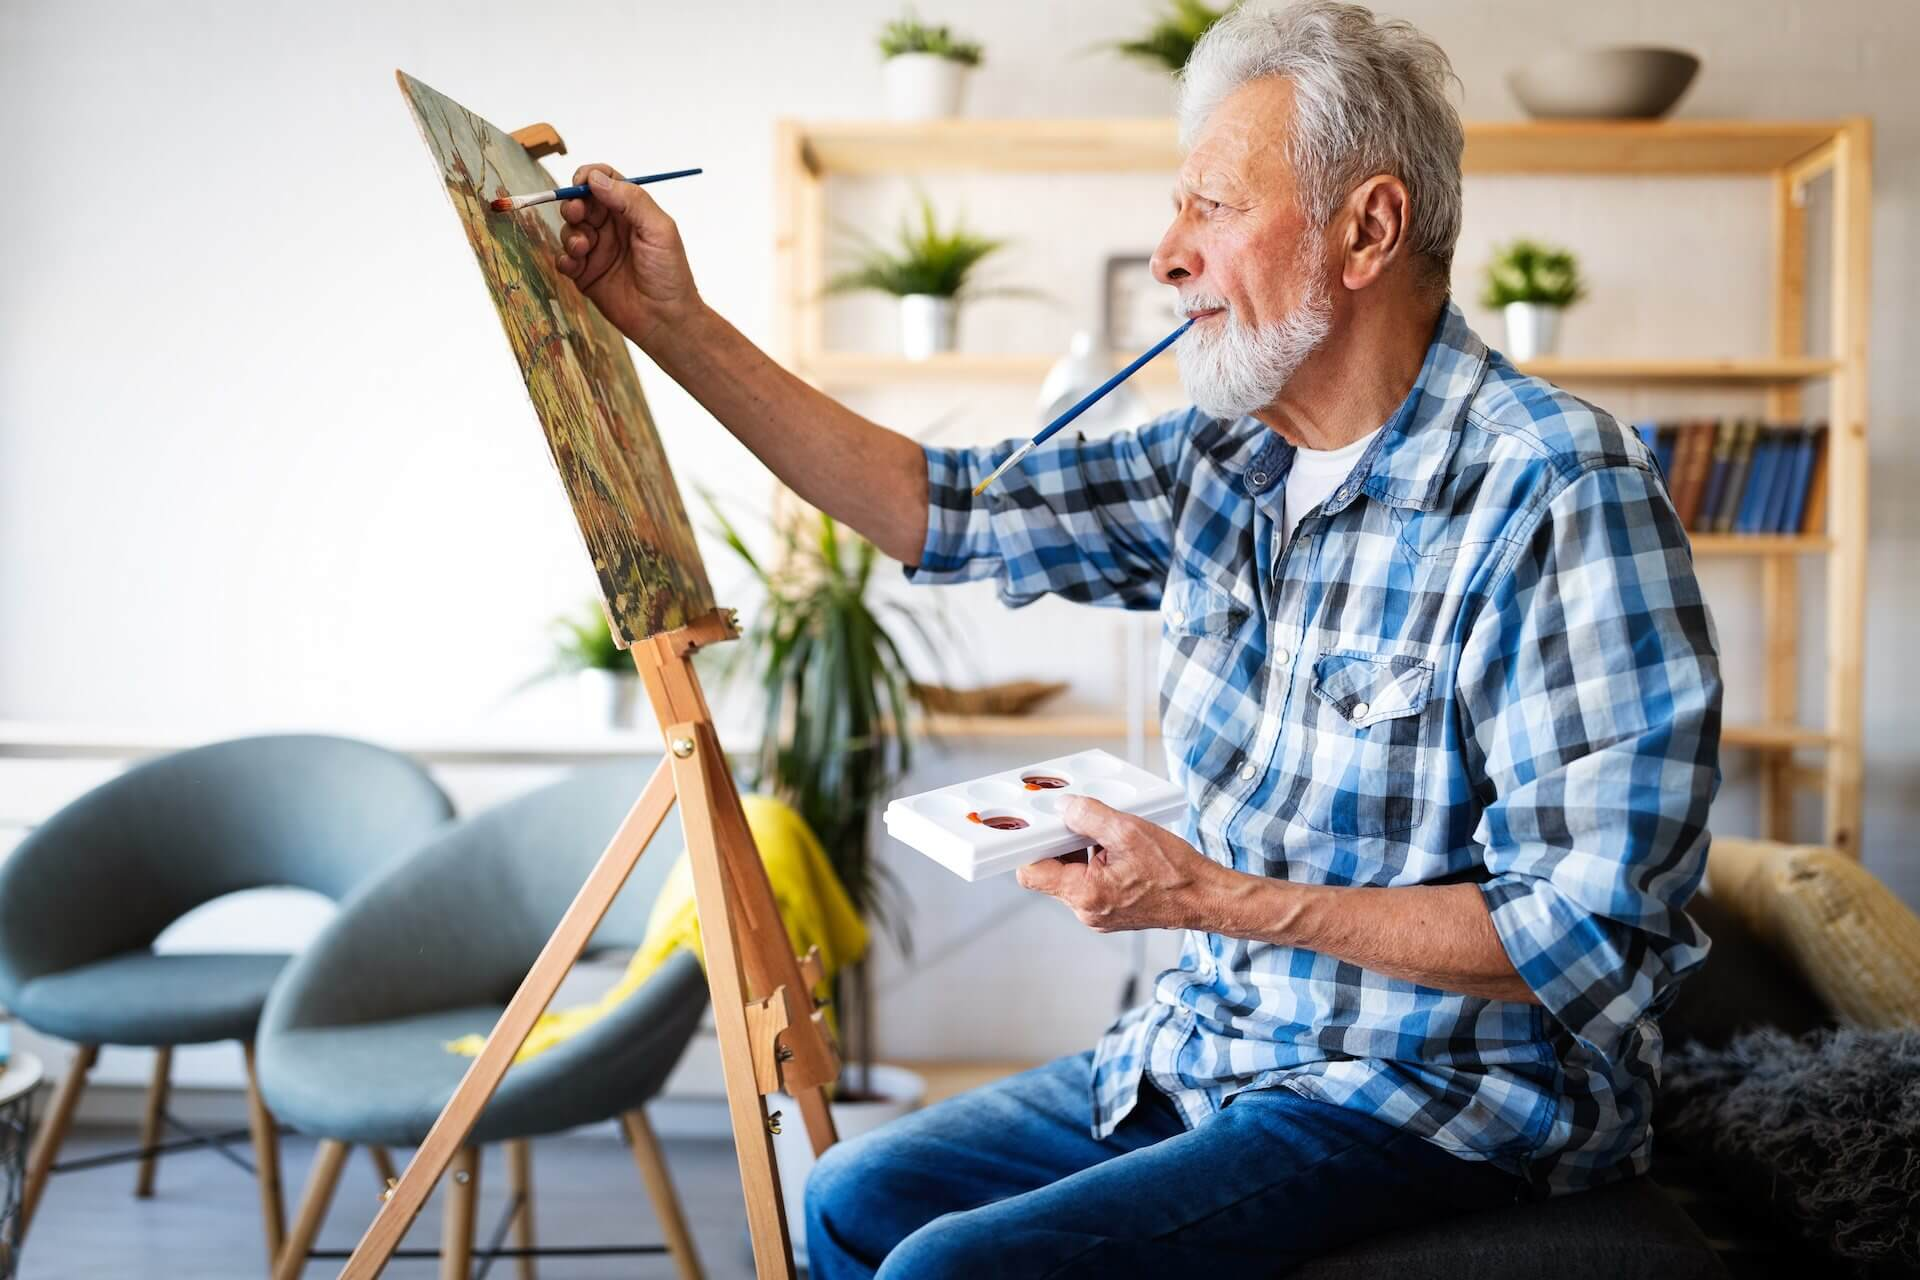 Older white man wearing blue plaid shirt painting on a wooden panel at an easel